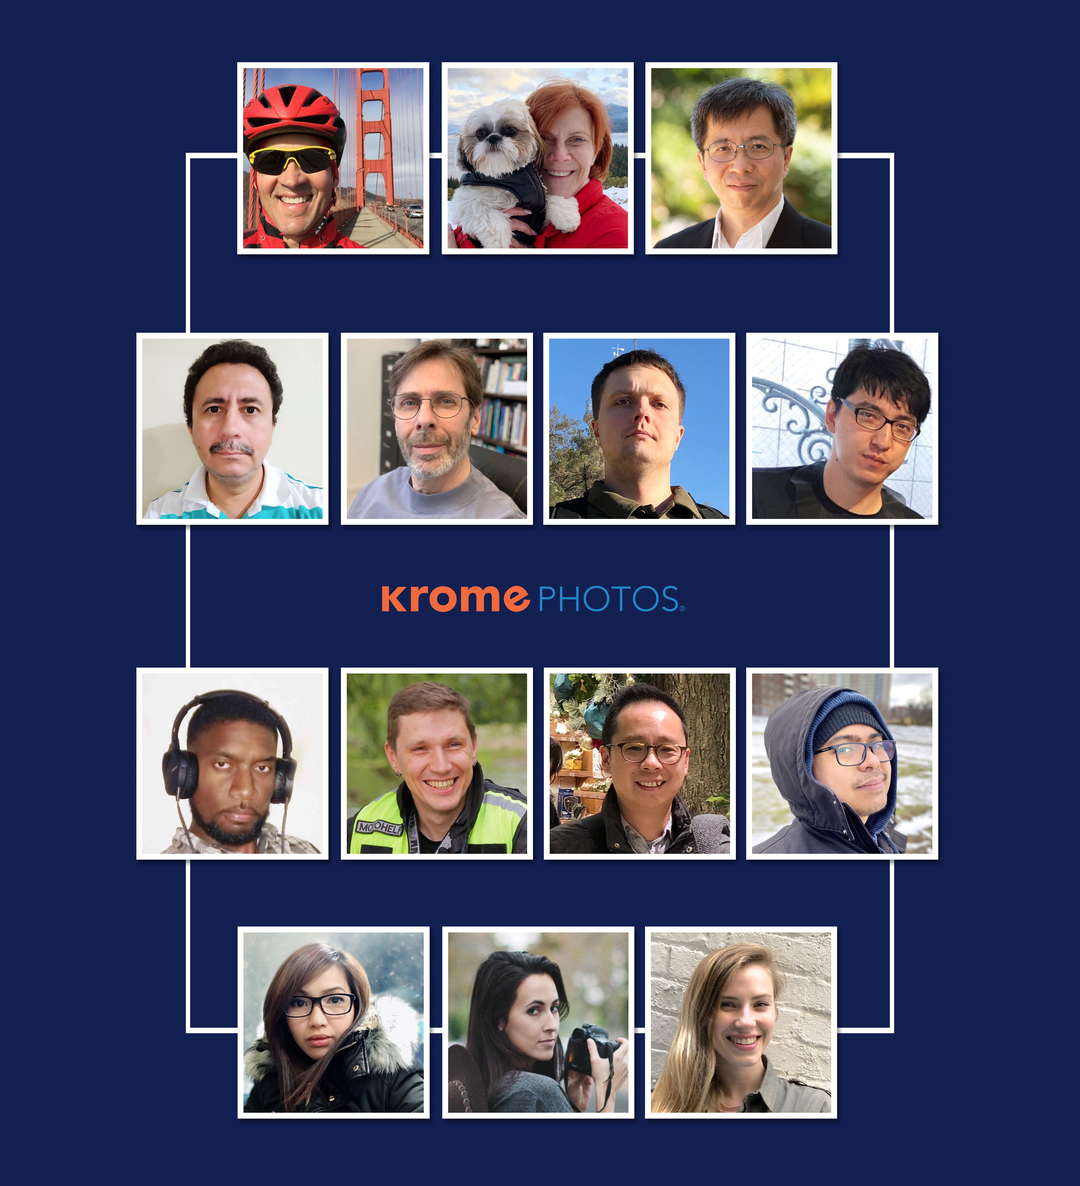 Krome employees in a group photo